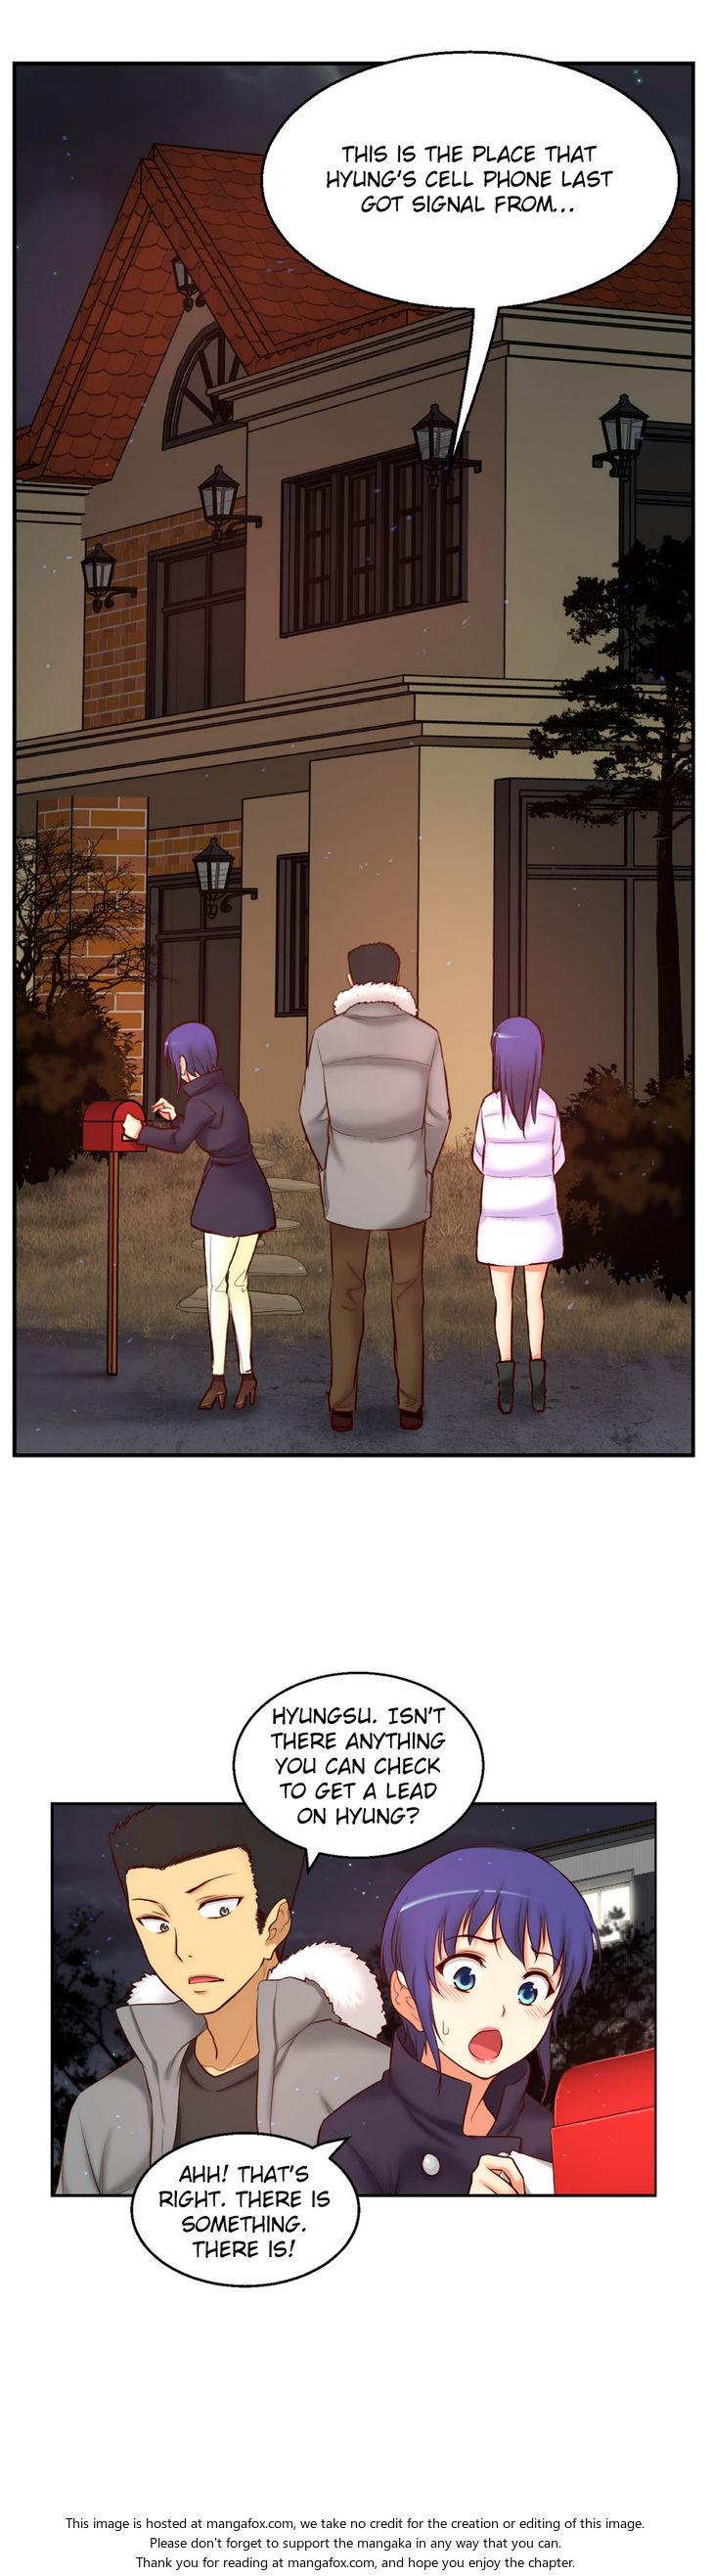 [Donggul Gom] She is Young (English) Part 1/2 1739